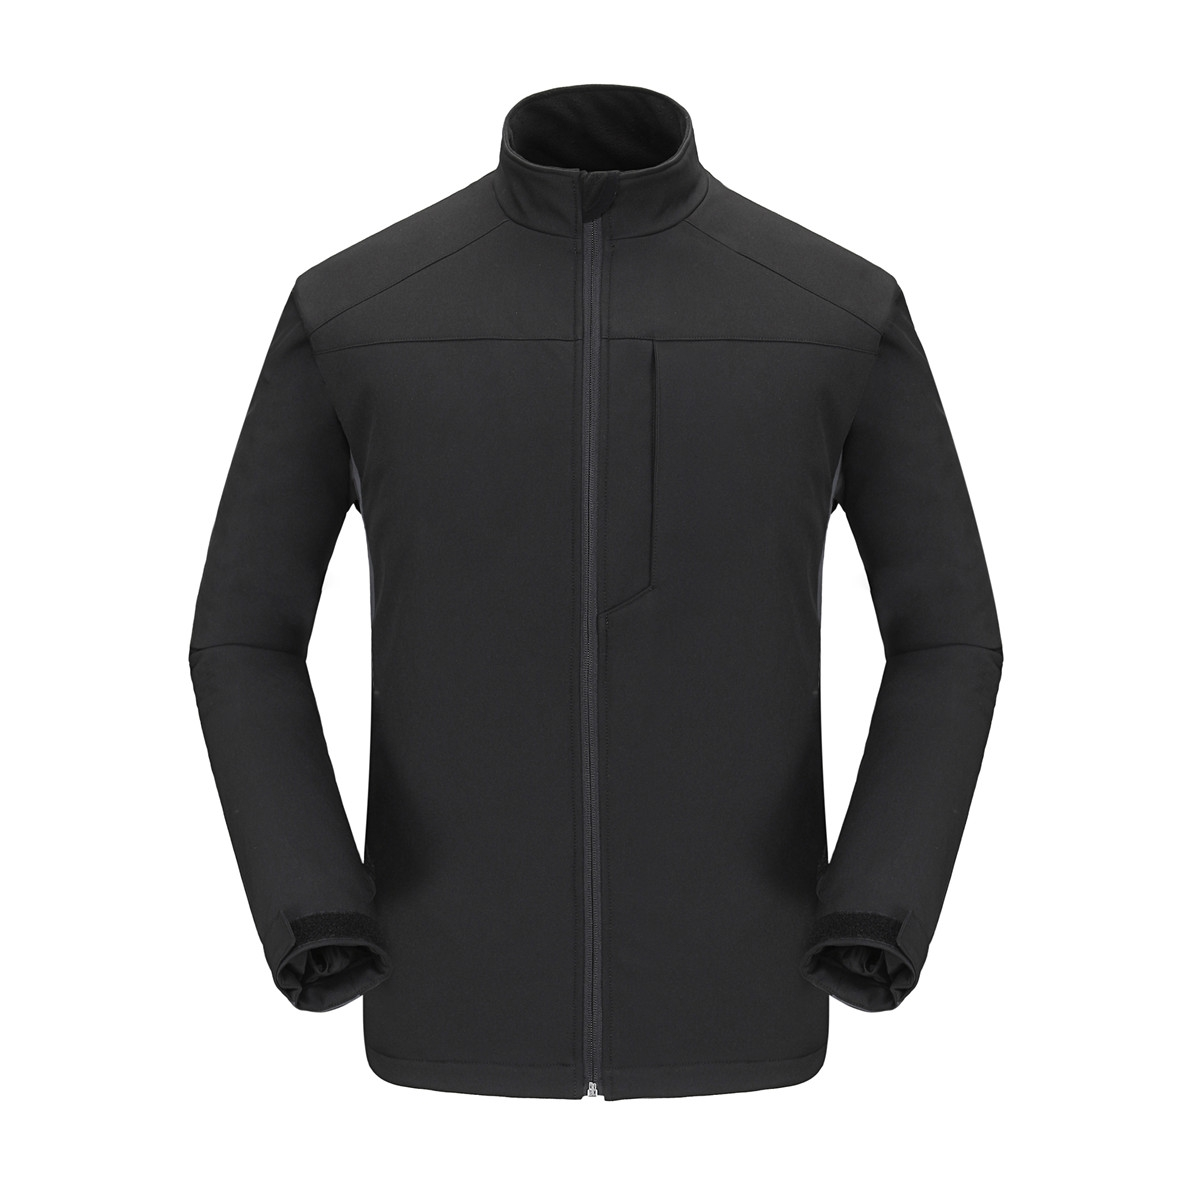 Men's heated waterproof working jacket